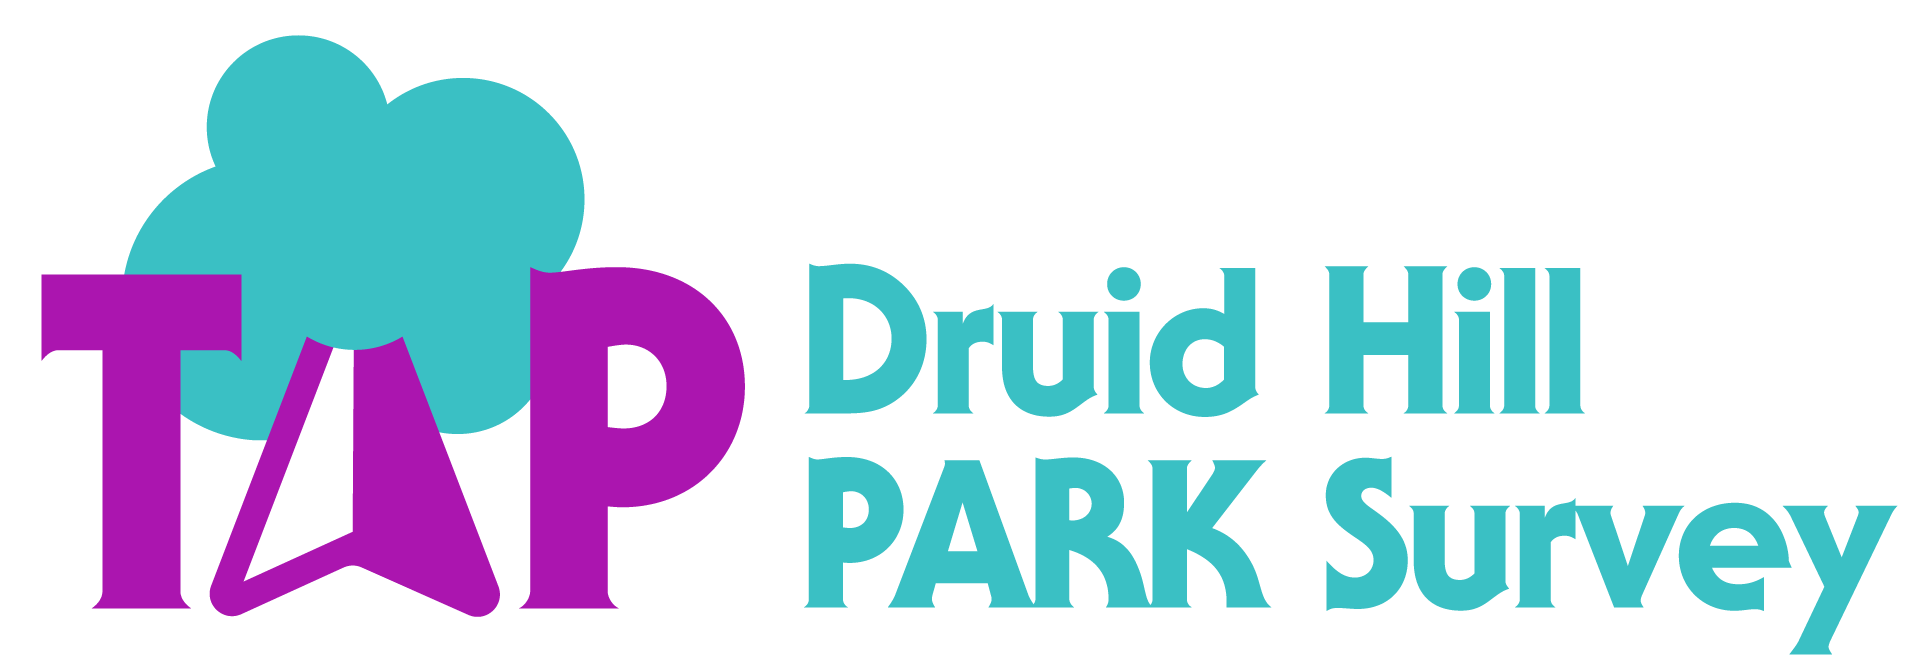 TAP Druid Hill PARK Survey horizontal logo